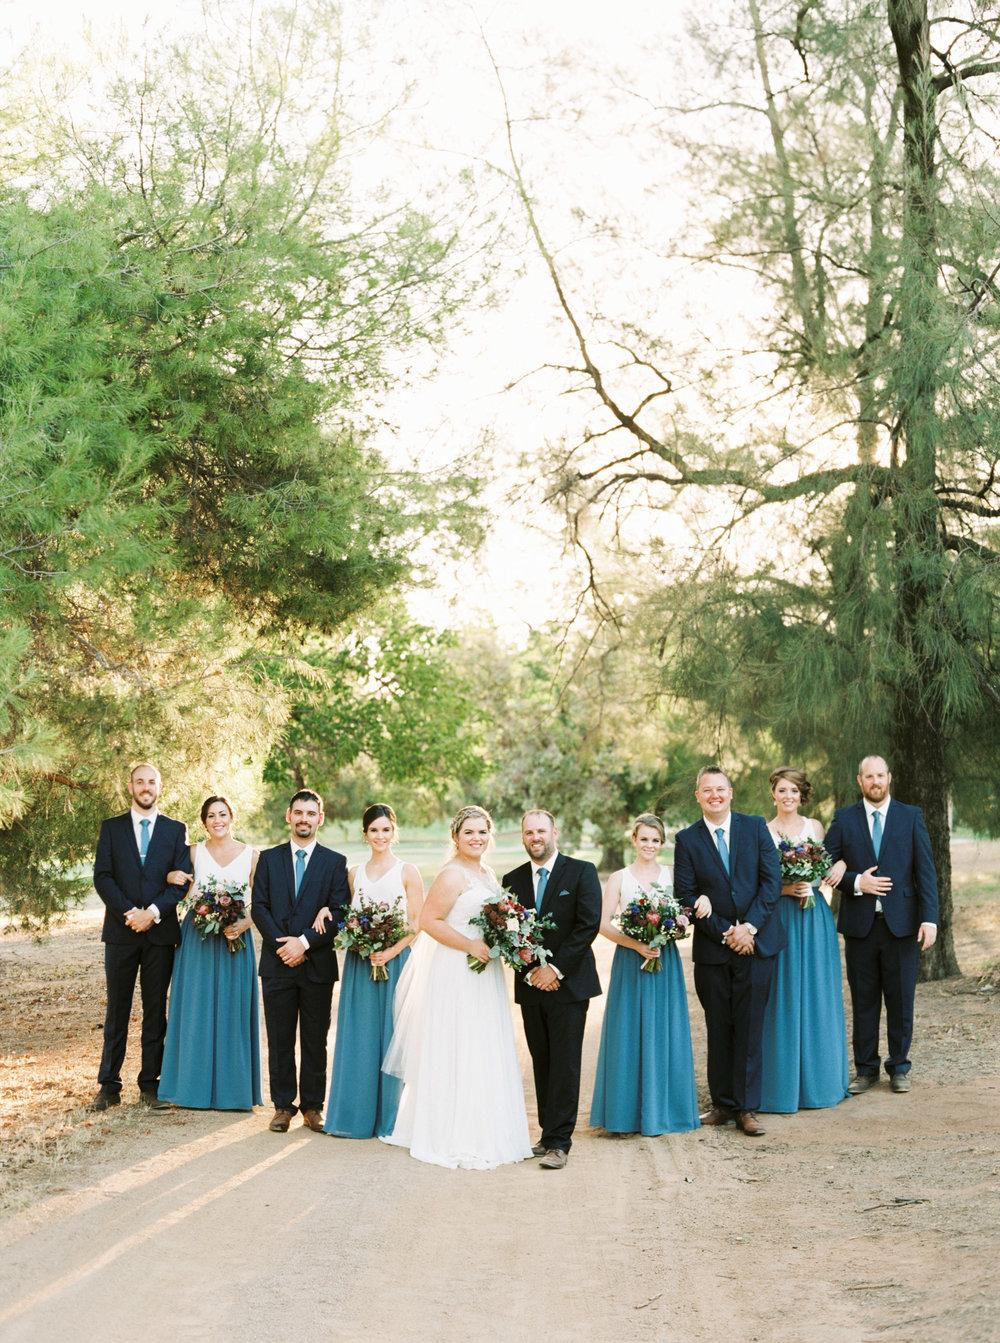 00055- Fine Art Film NSW Mudgee Wedding Photographer Sheri McMahon.jpg